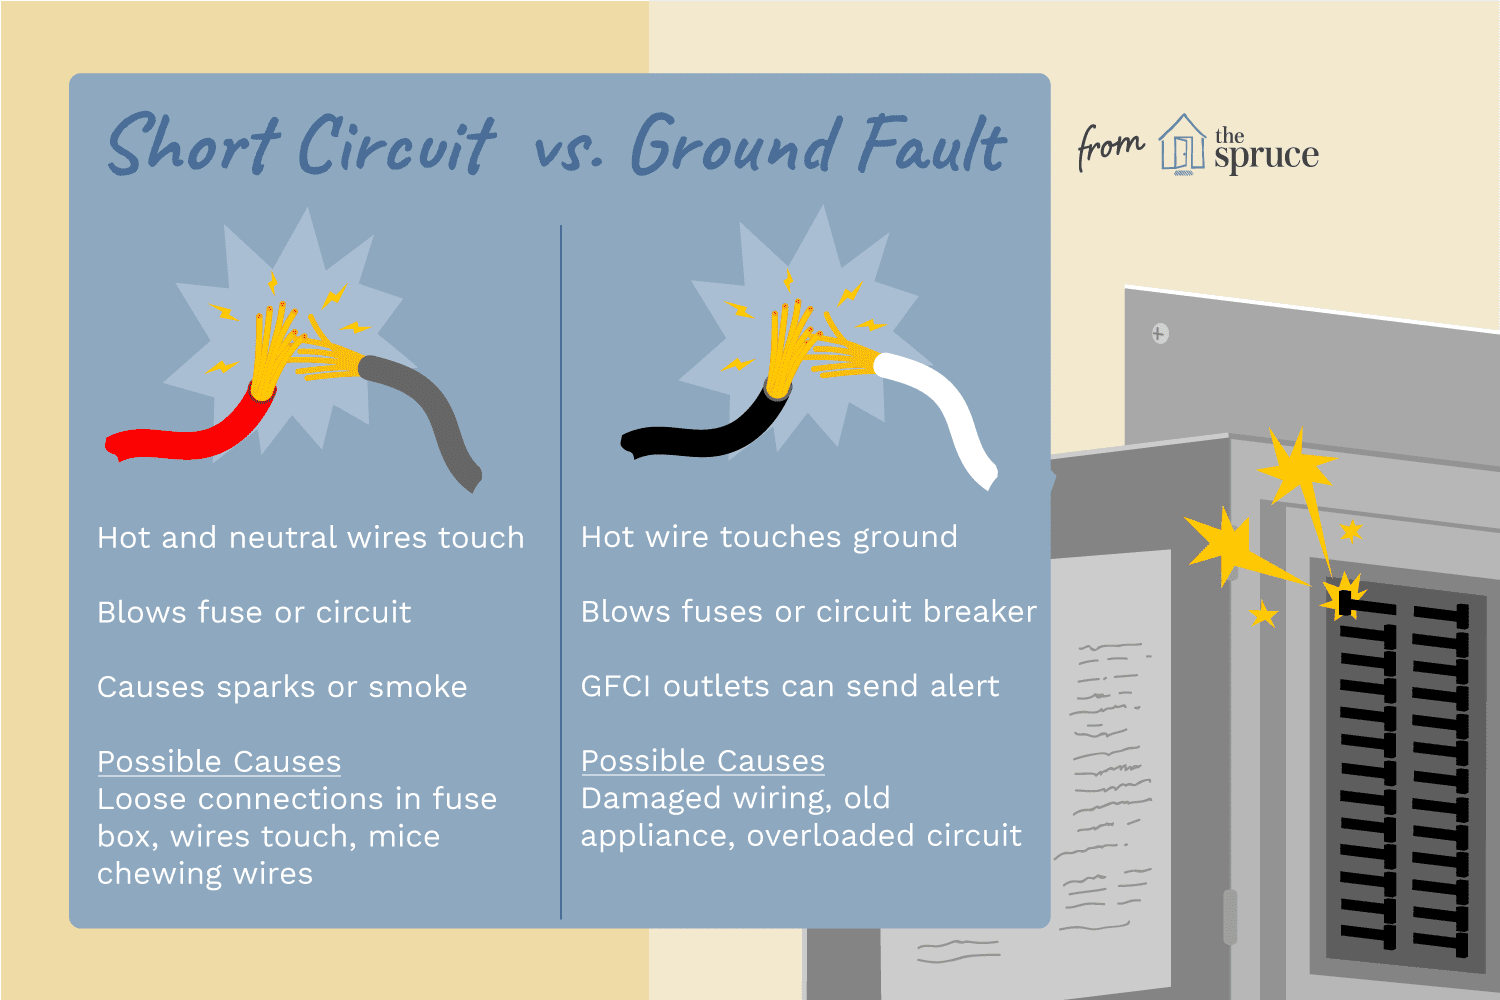 Short Circuit Vs Ground Fault Home Fire Alarm 4 To 3 Wire Wiring Diagram Difference